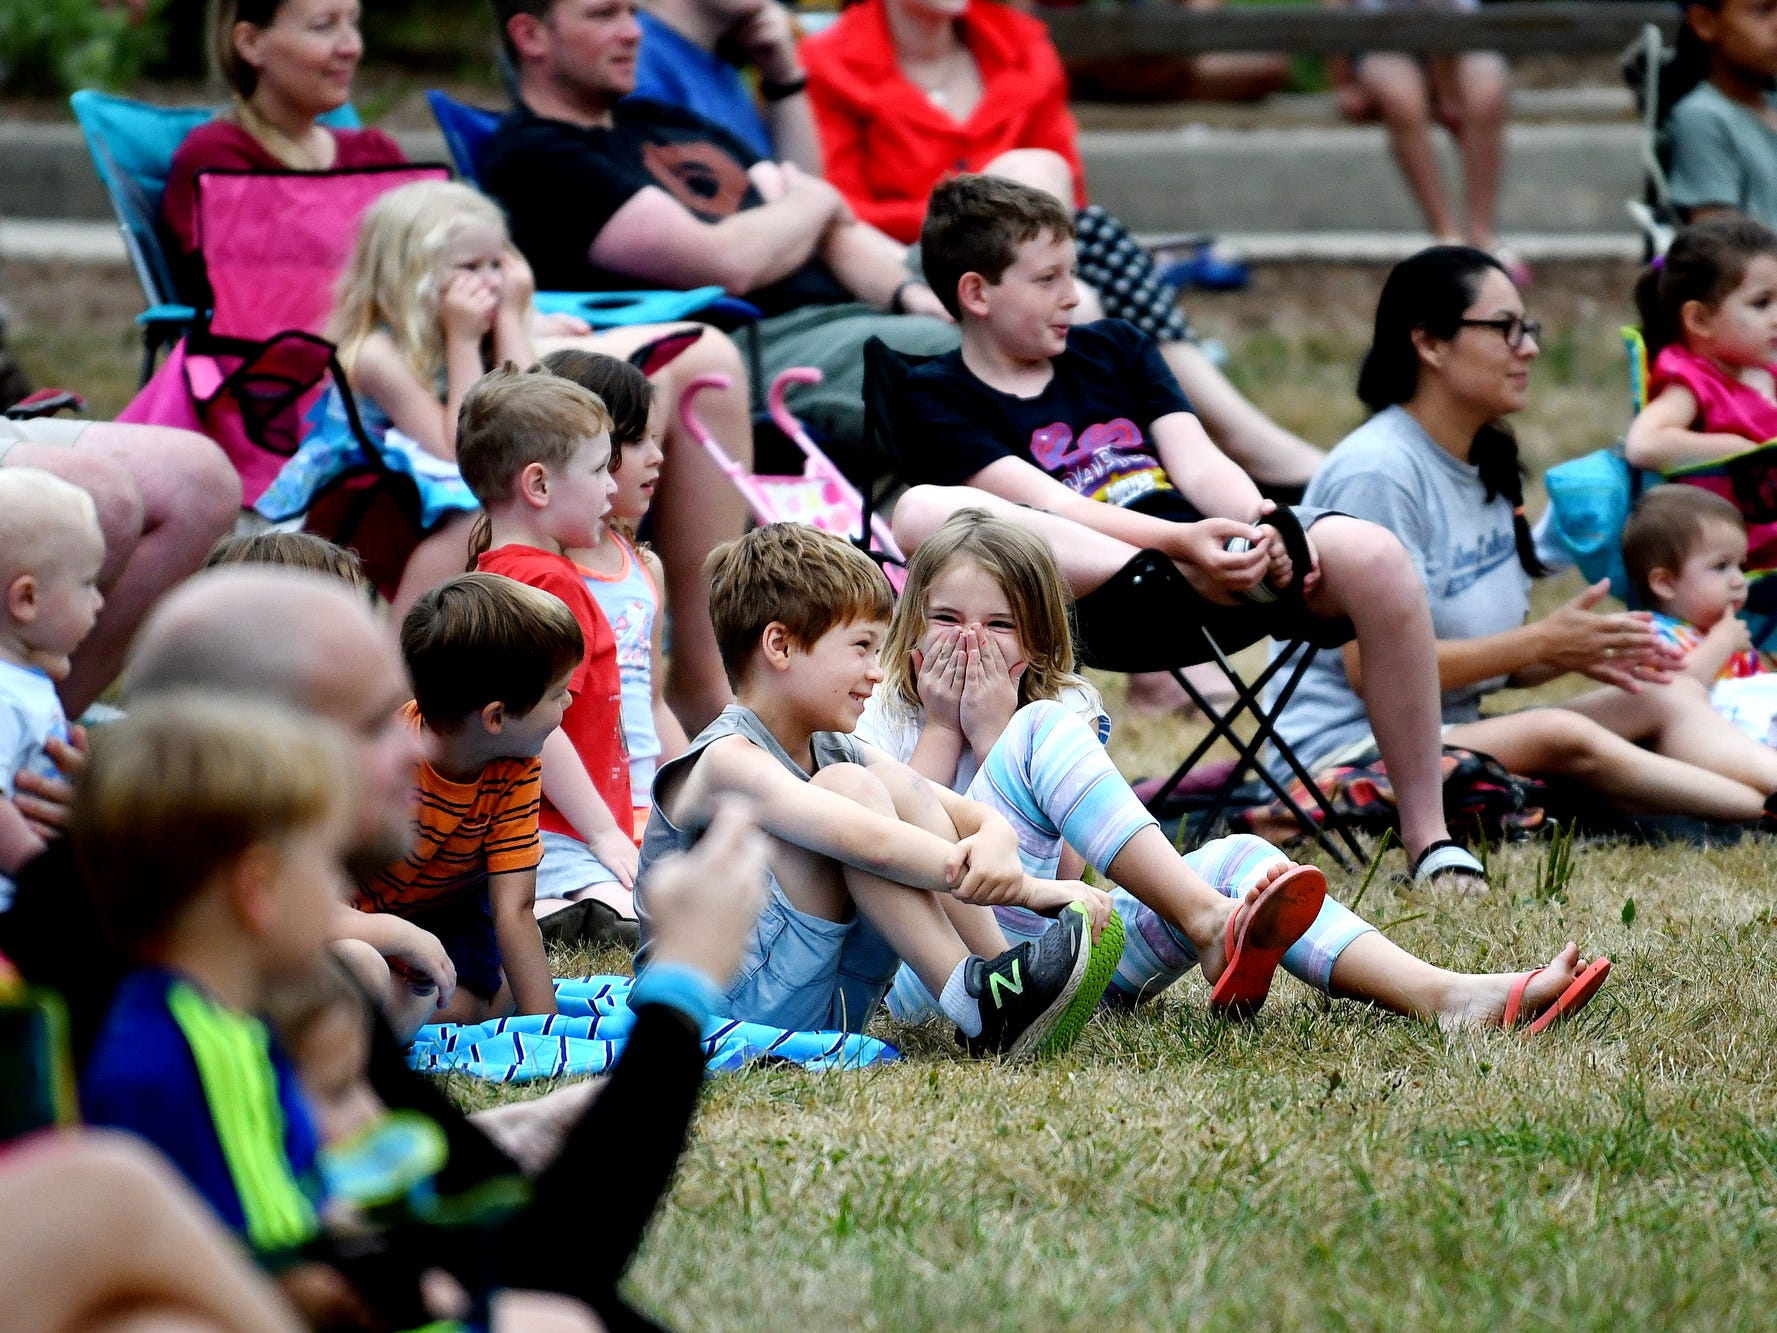 Children and adults watch as Zeke the Wonderdog IV performs with other dogs during Play in the Park on Tuesday, July 31, 2018, at Valley Court Park in East Lansing.